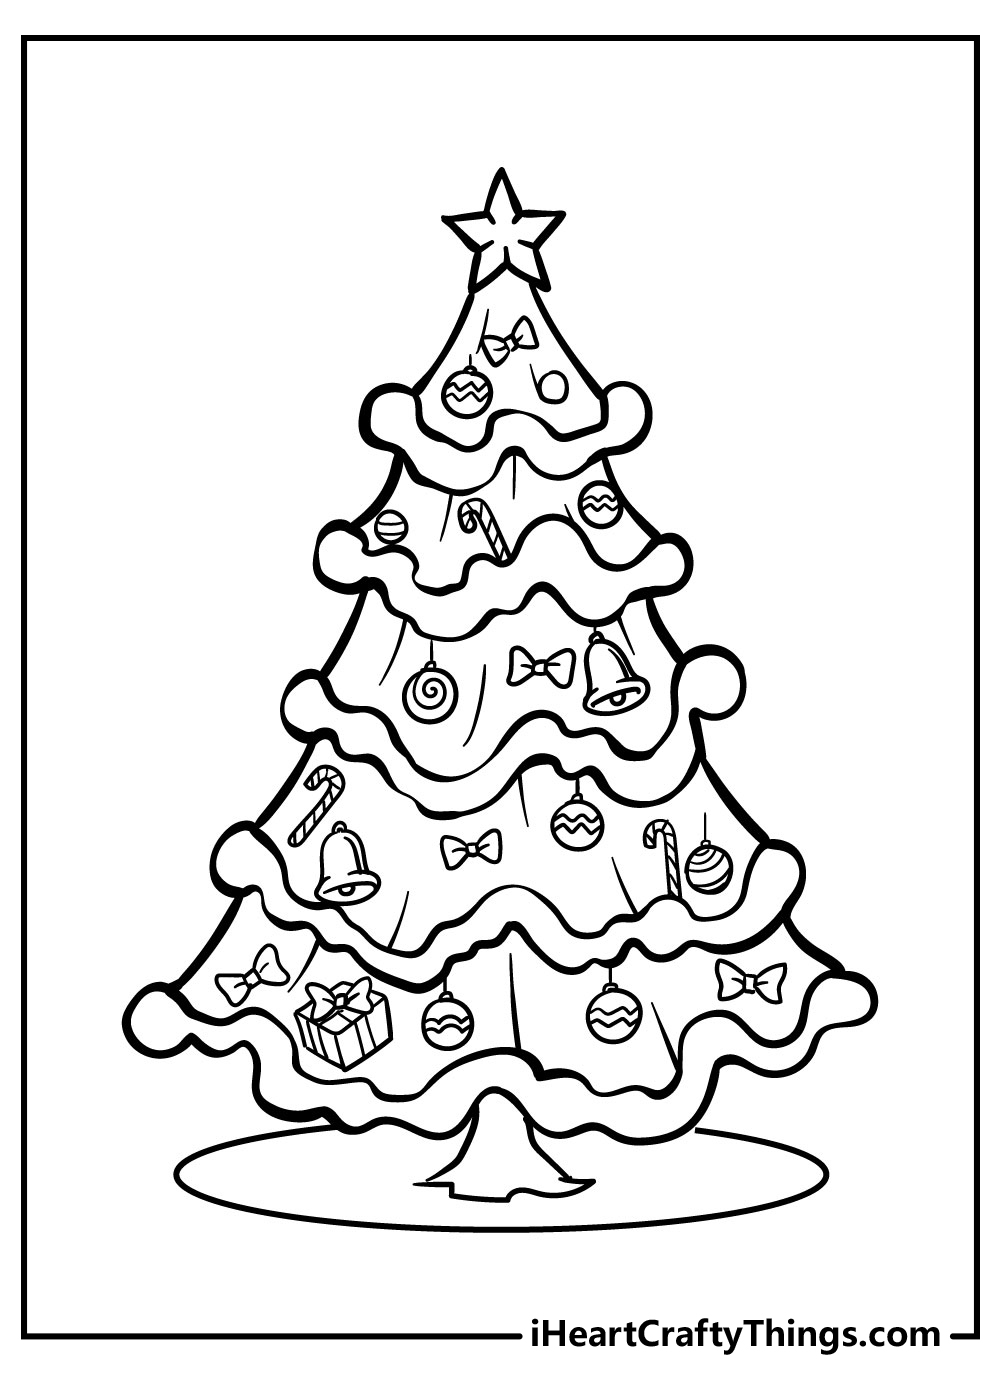 difficult christmas tree coloring pages for adults